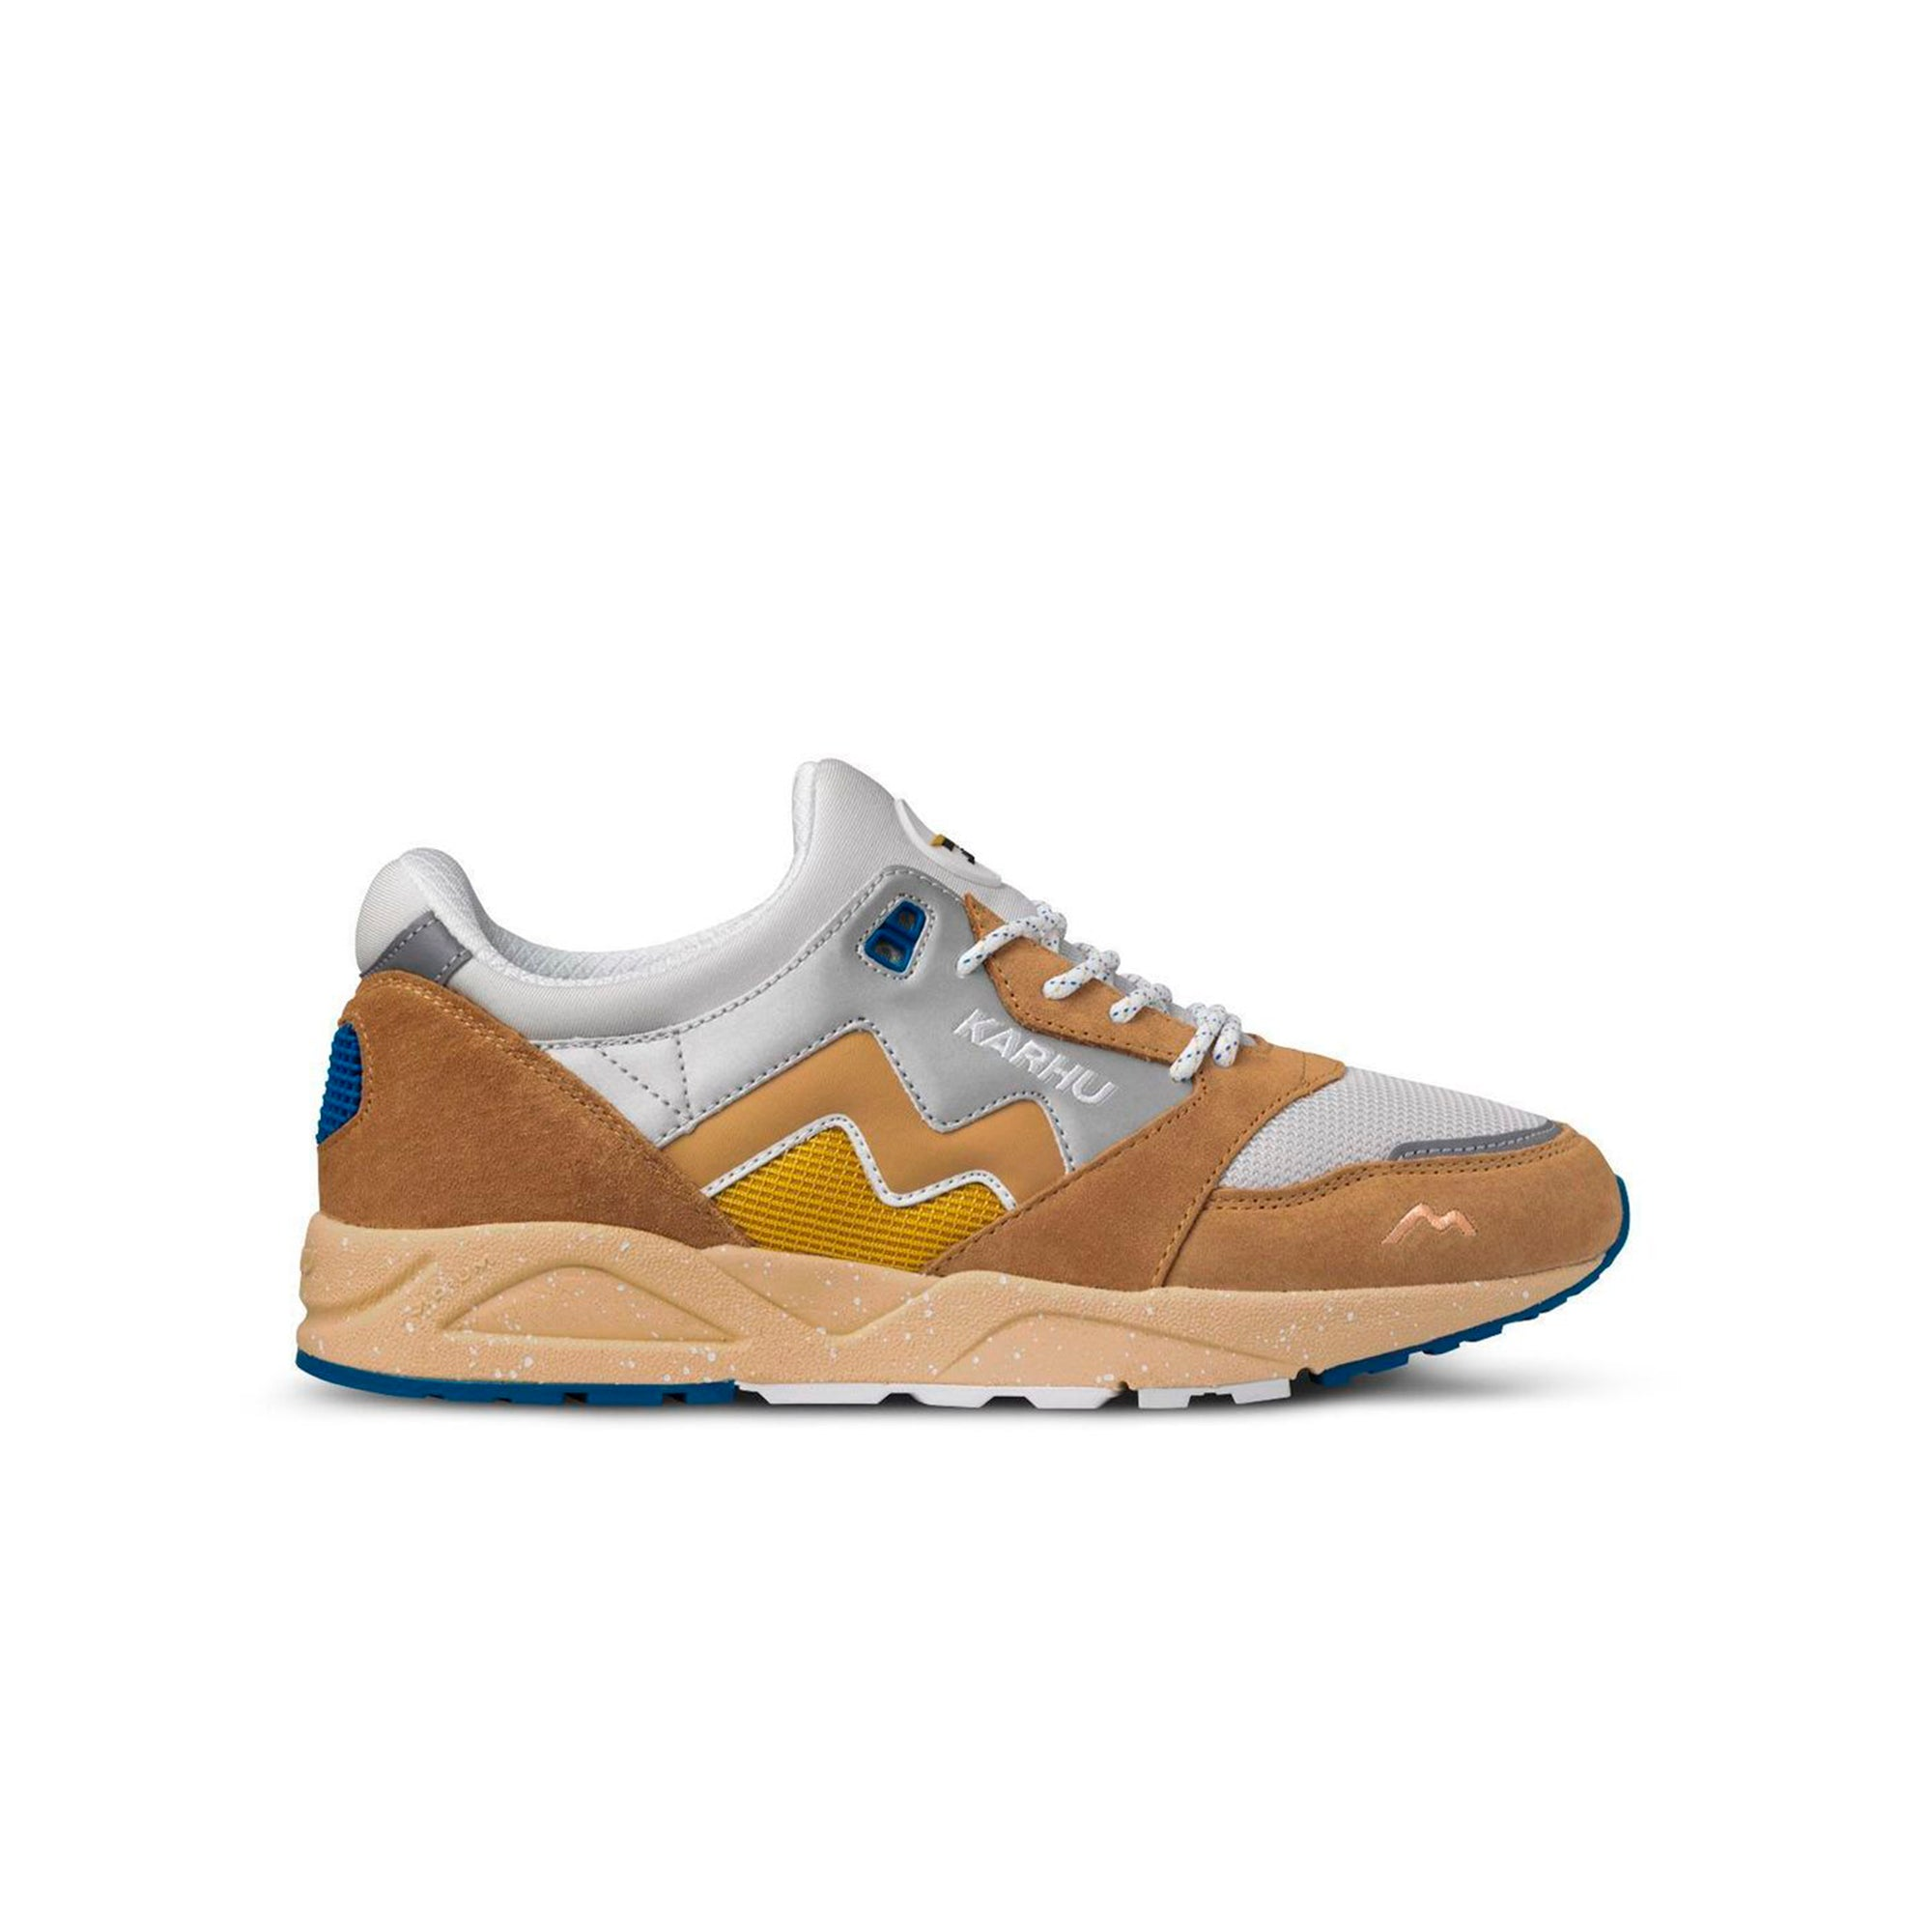 Karhu Aria 95: Curry / Golden Palm - The Union Project